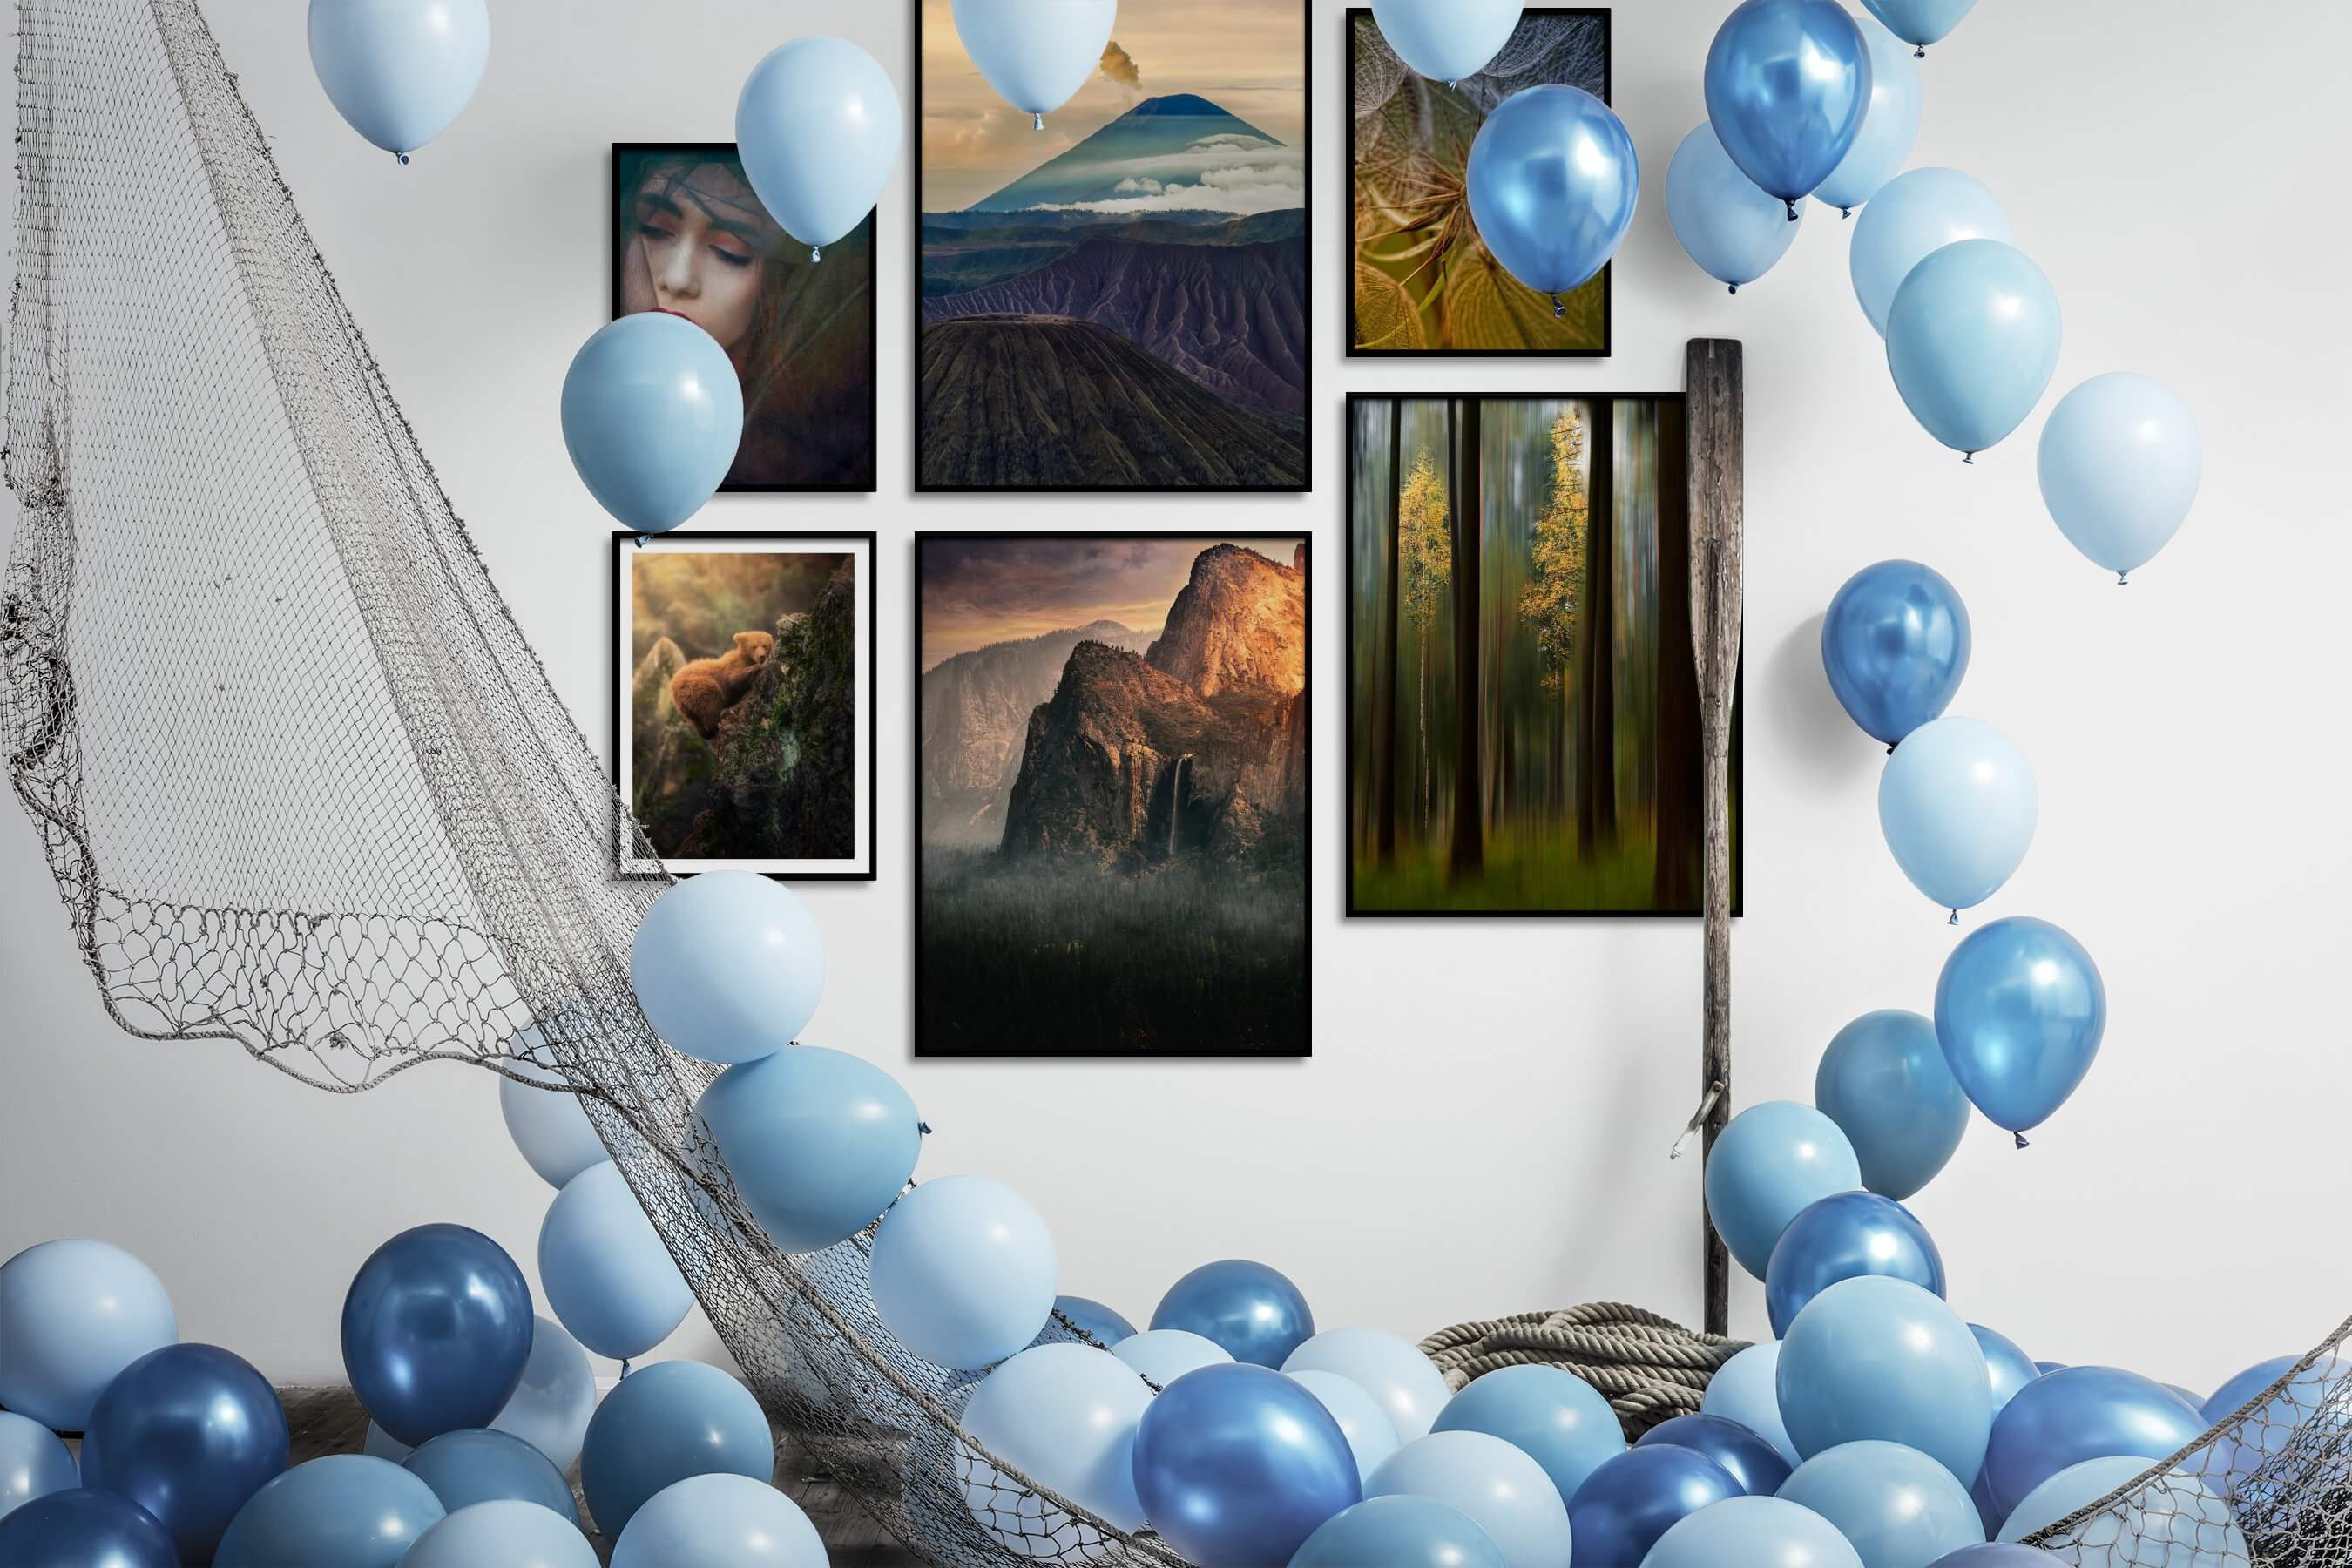 Gallery wall idea with six framed pictures arranged on a wall depicting Fashion & Beauty, Nature, Animals, Americana, For the Moderate, Flowers & Plants, and Mindfulness